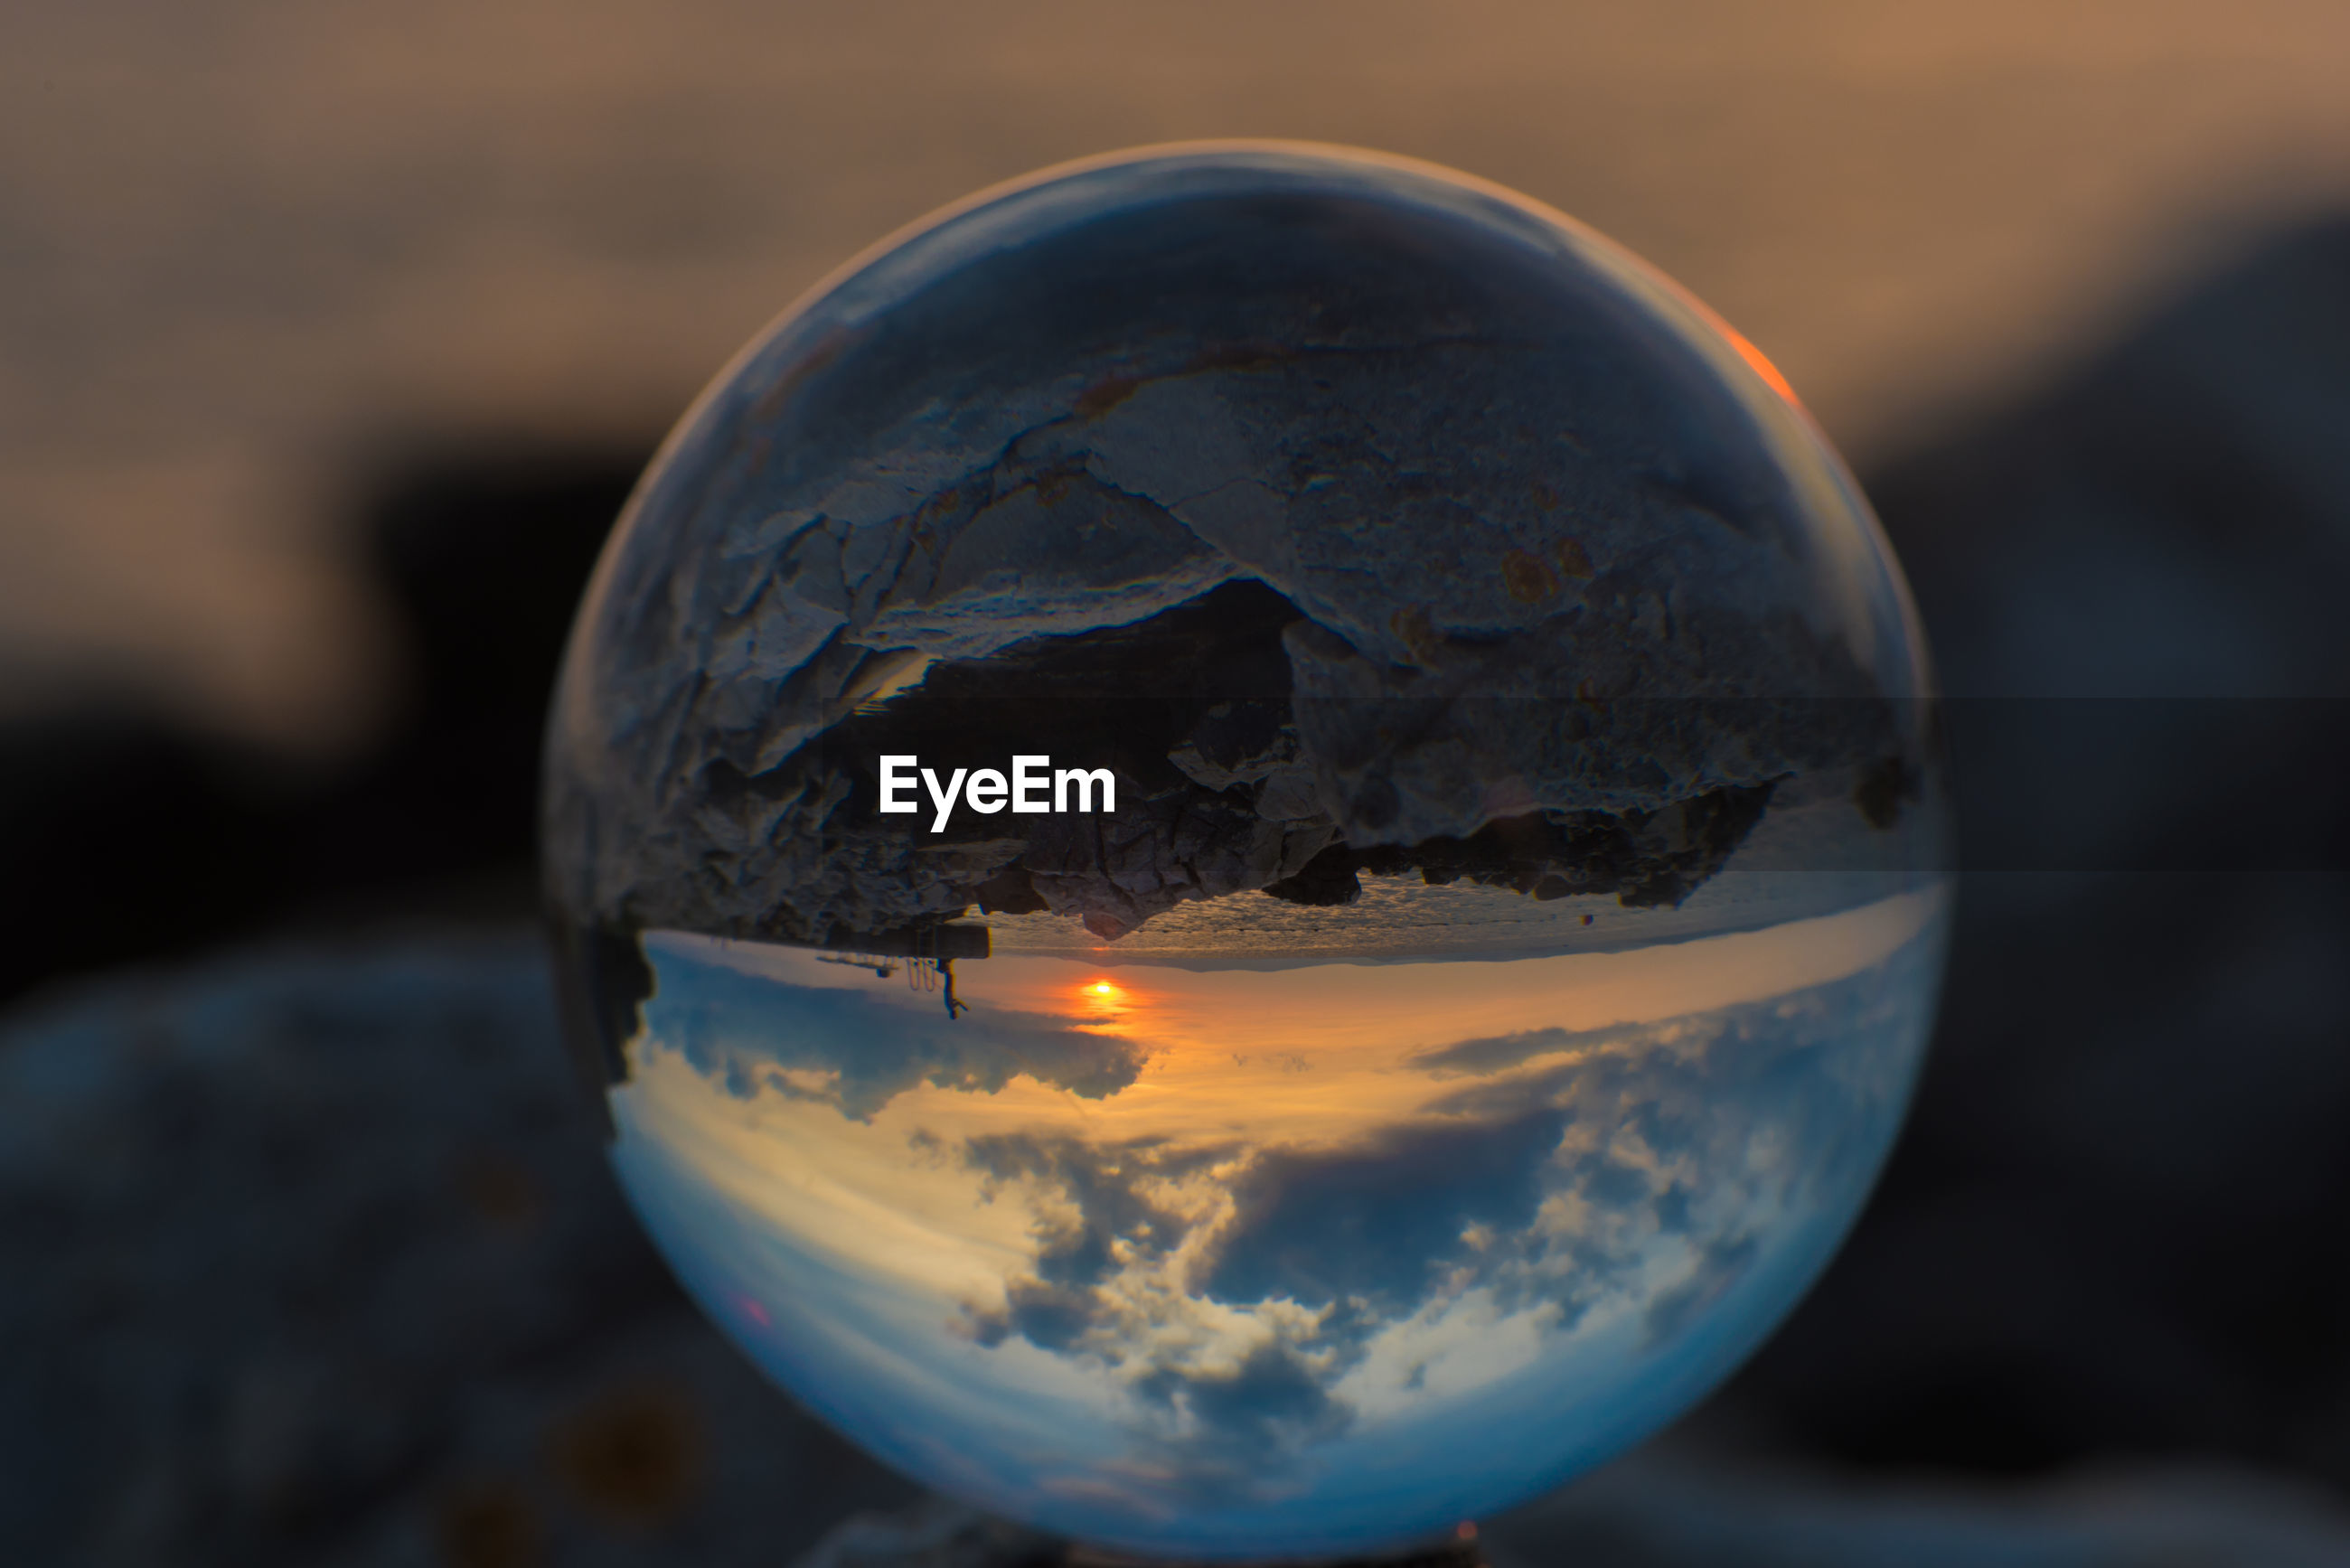 CLOSE-UP OF CRYSTAL BALL IN GLASS